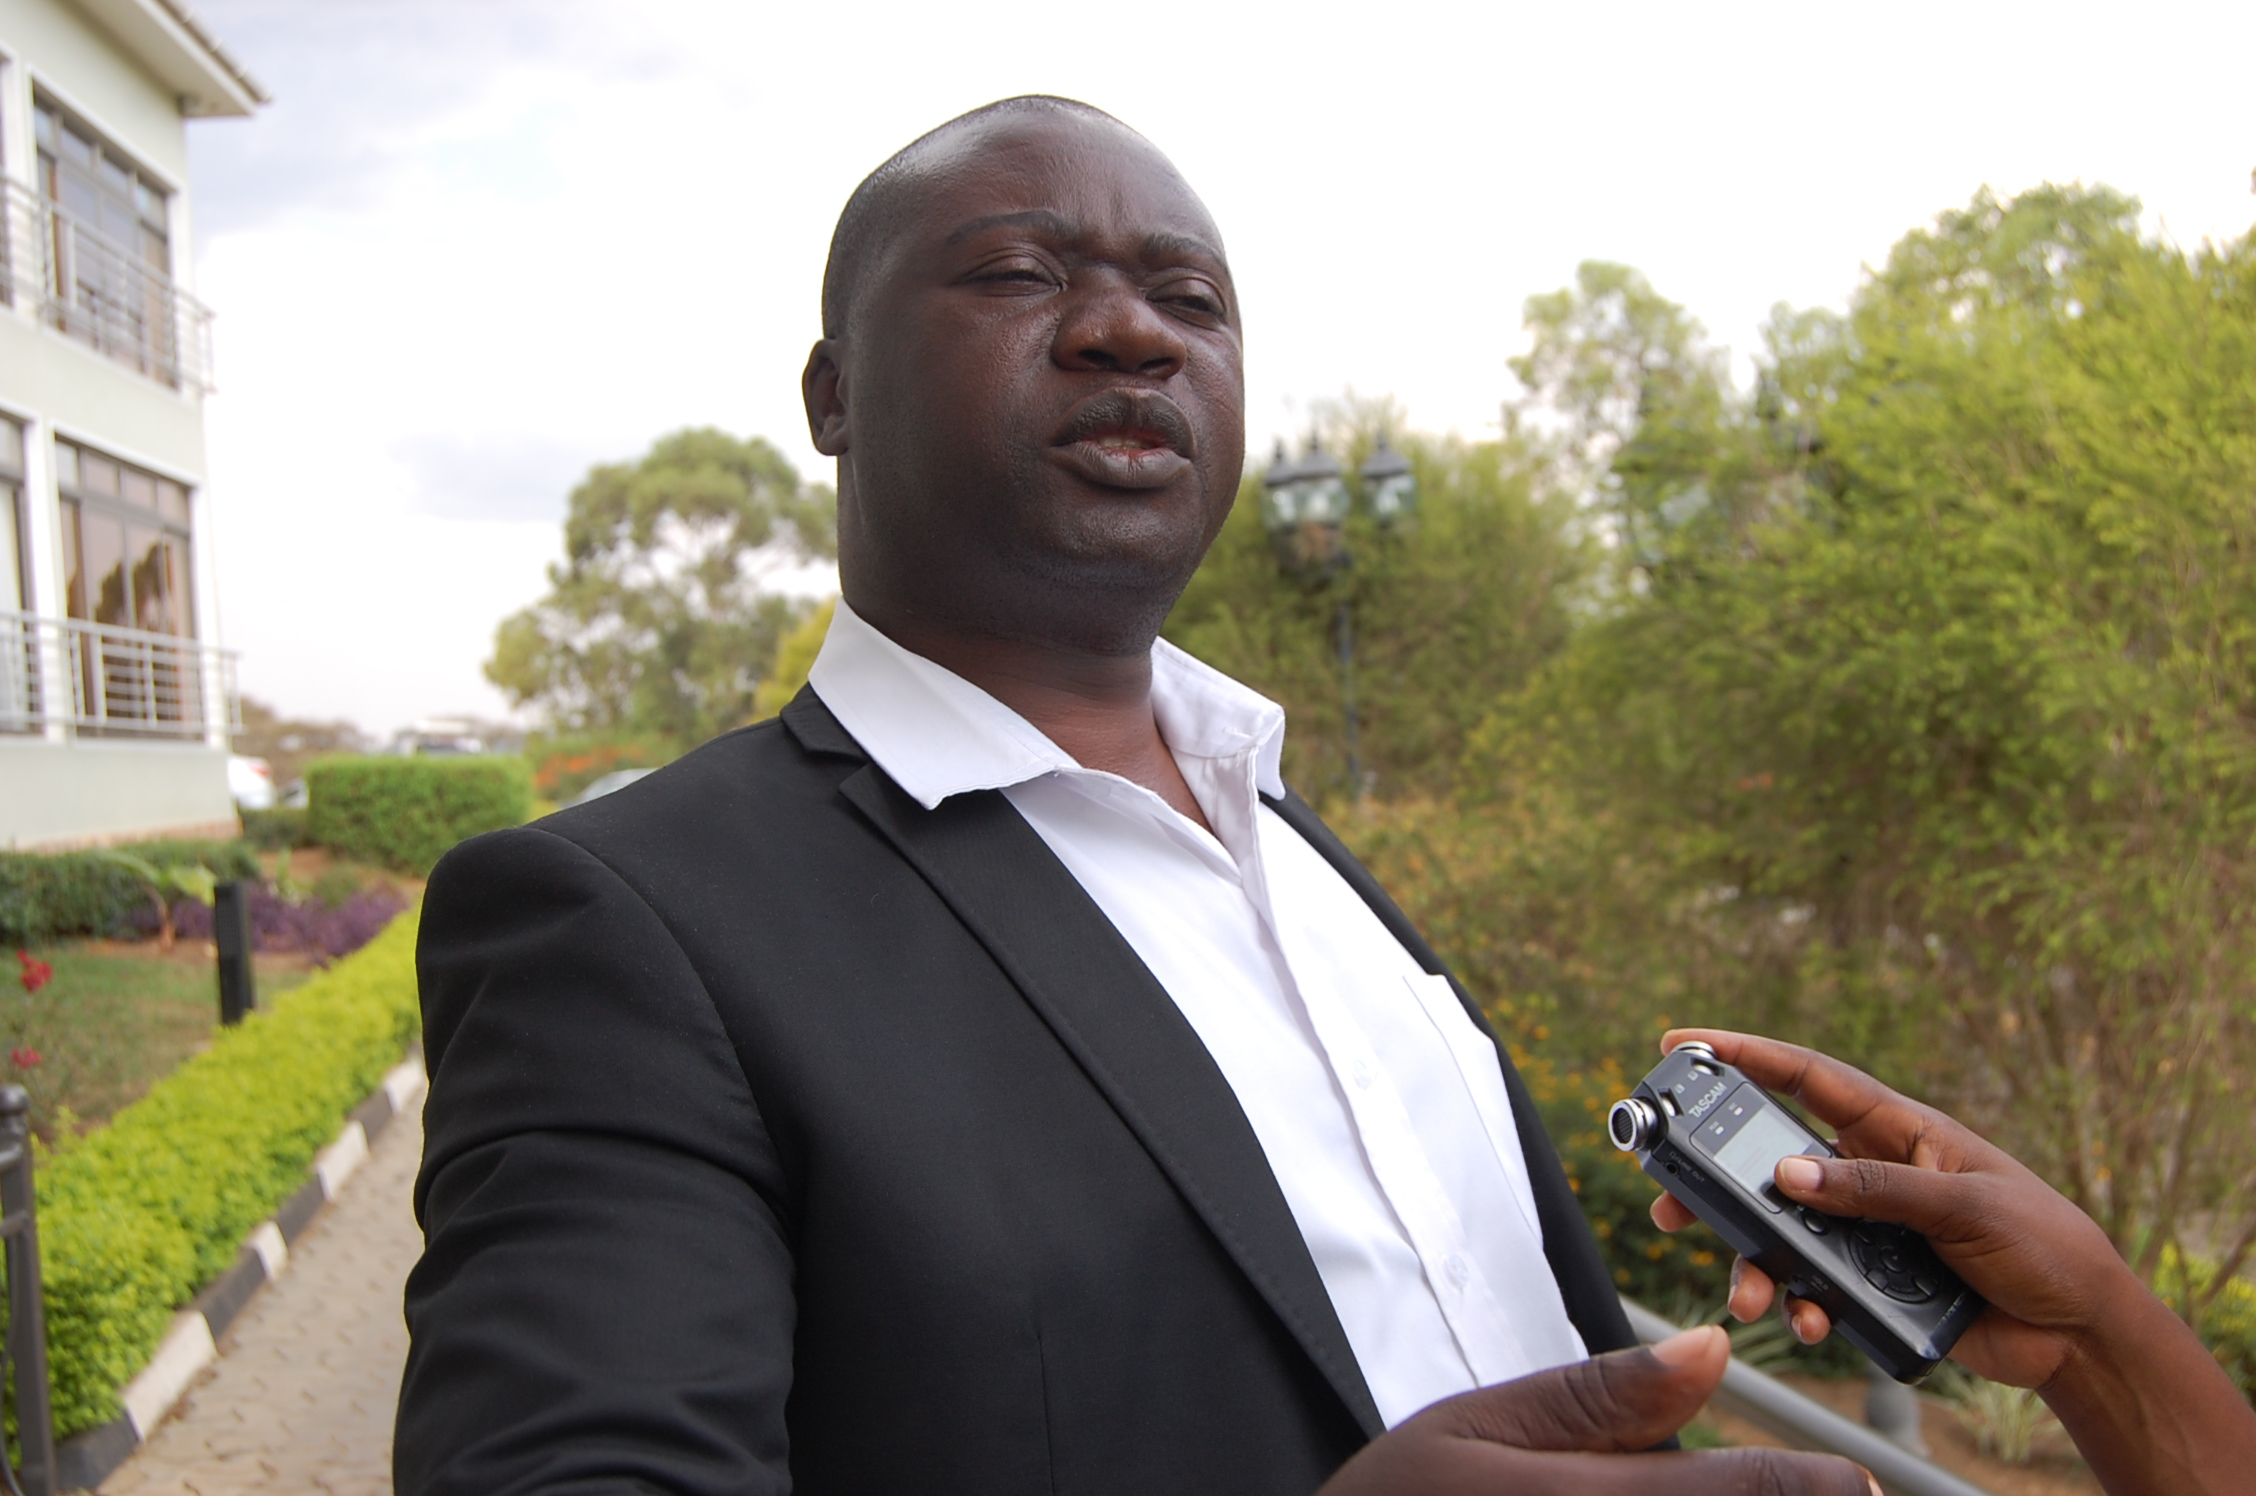 Isingiro District LCV Boss Jeremiah Kamurari has been slapped with an arrest warrant (PHOTO BY BOB AINE)